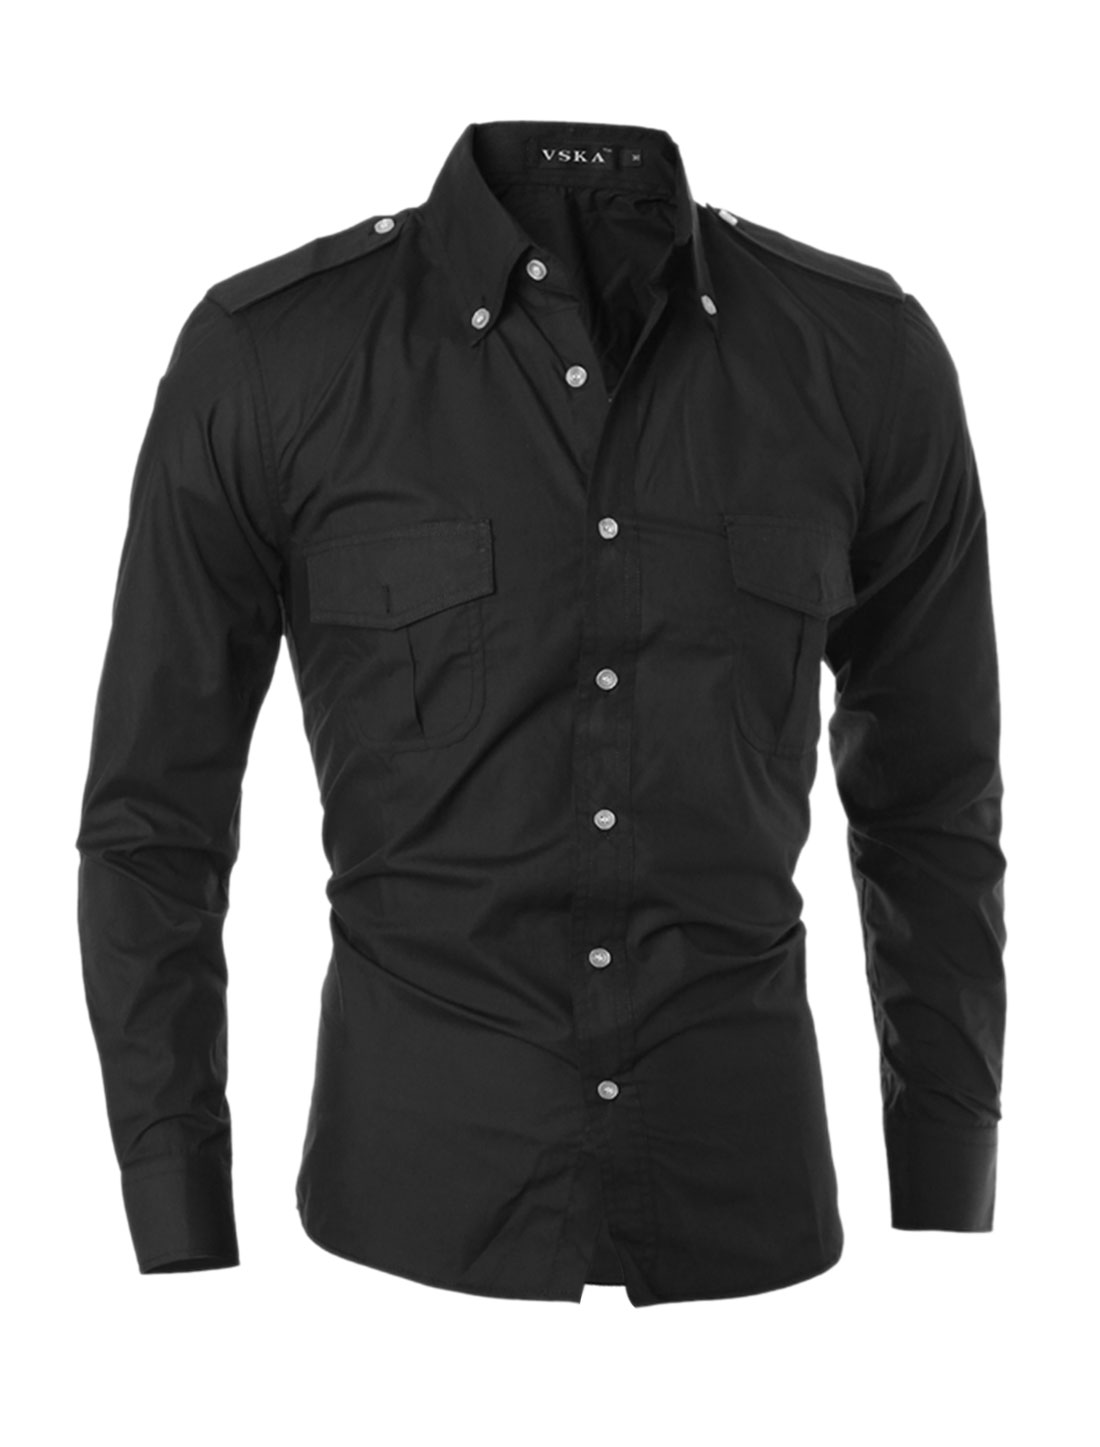 Man Flap Pockets Point Collar Buttoned Shirt Black S